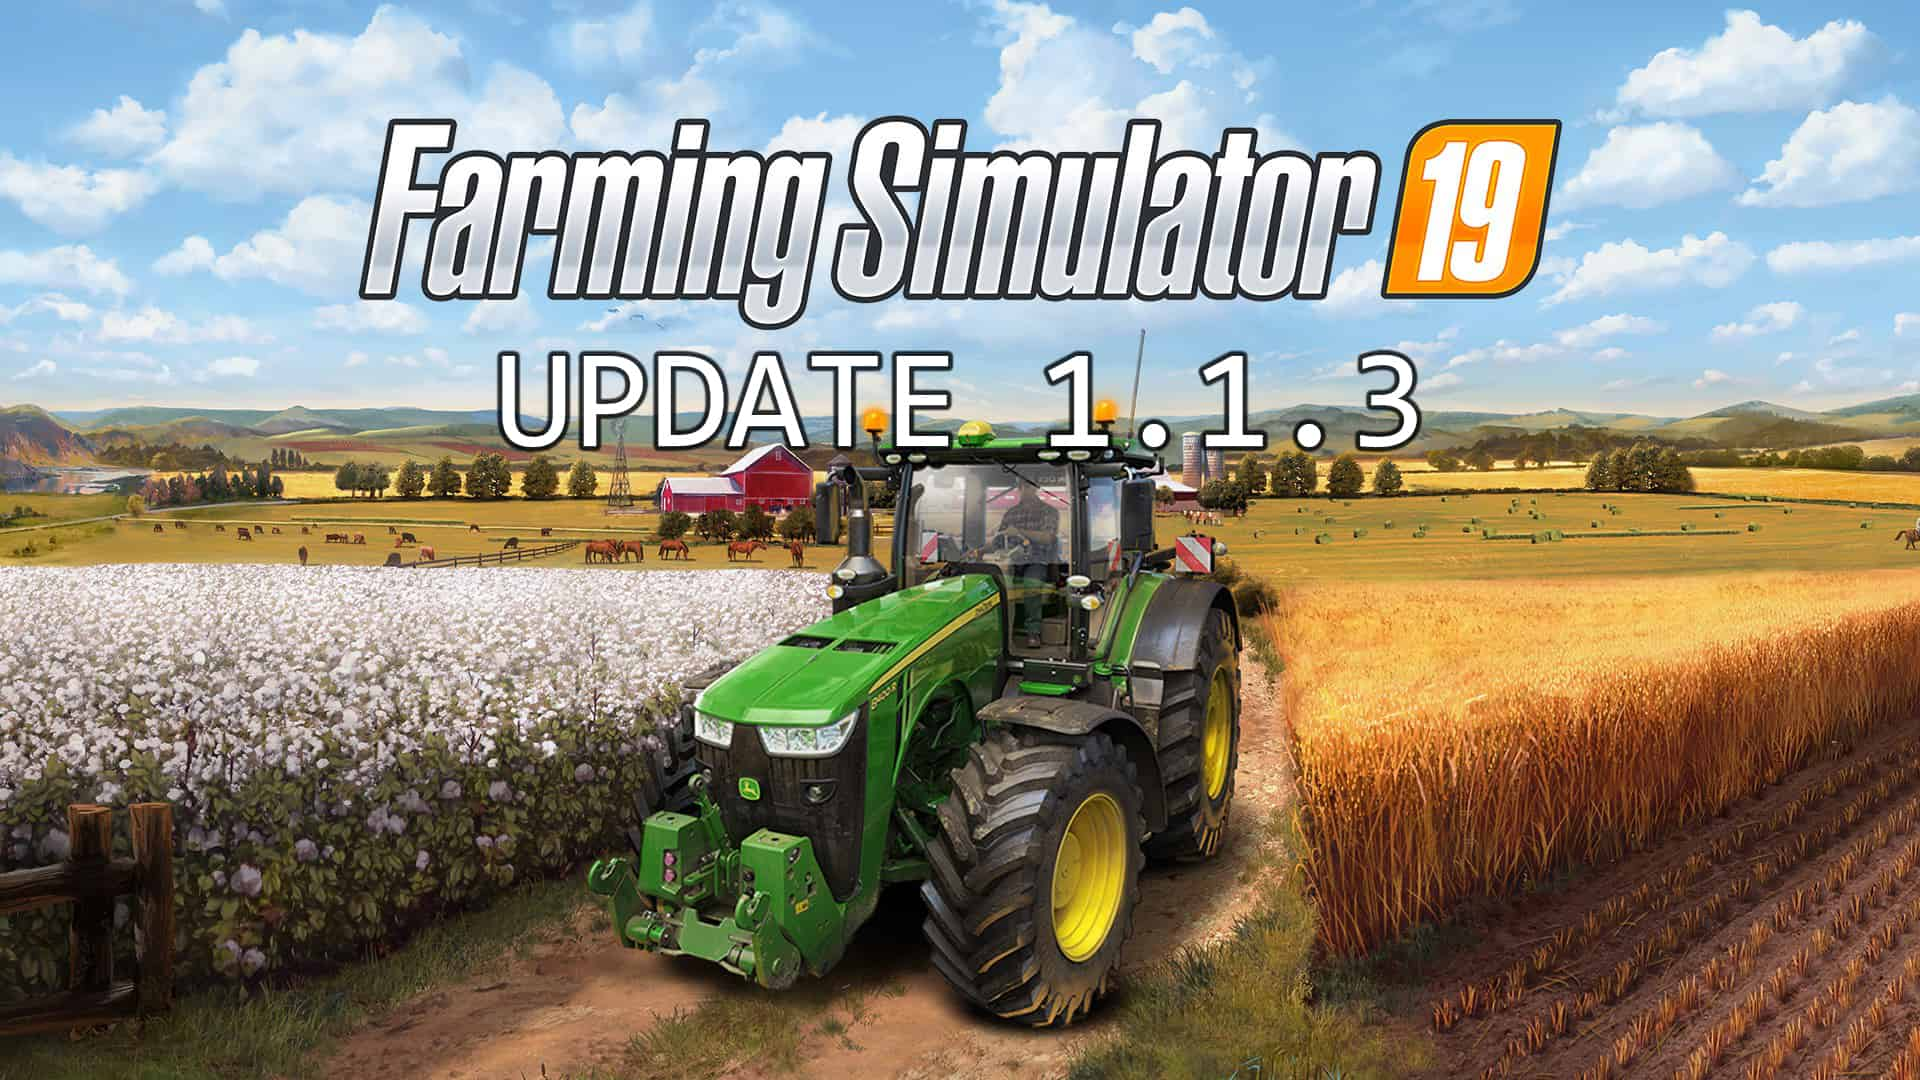 Farming Simulator 19 Update 1 1 3 Farming Simulator 19 Mod